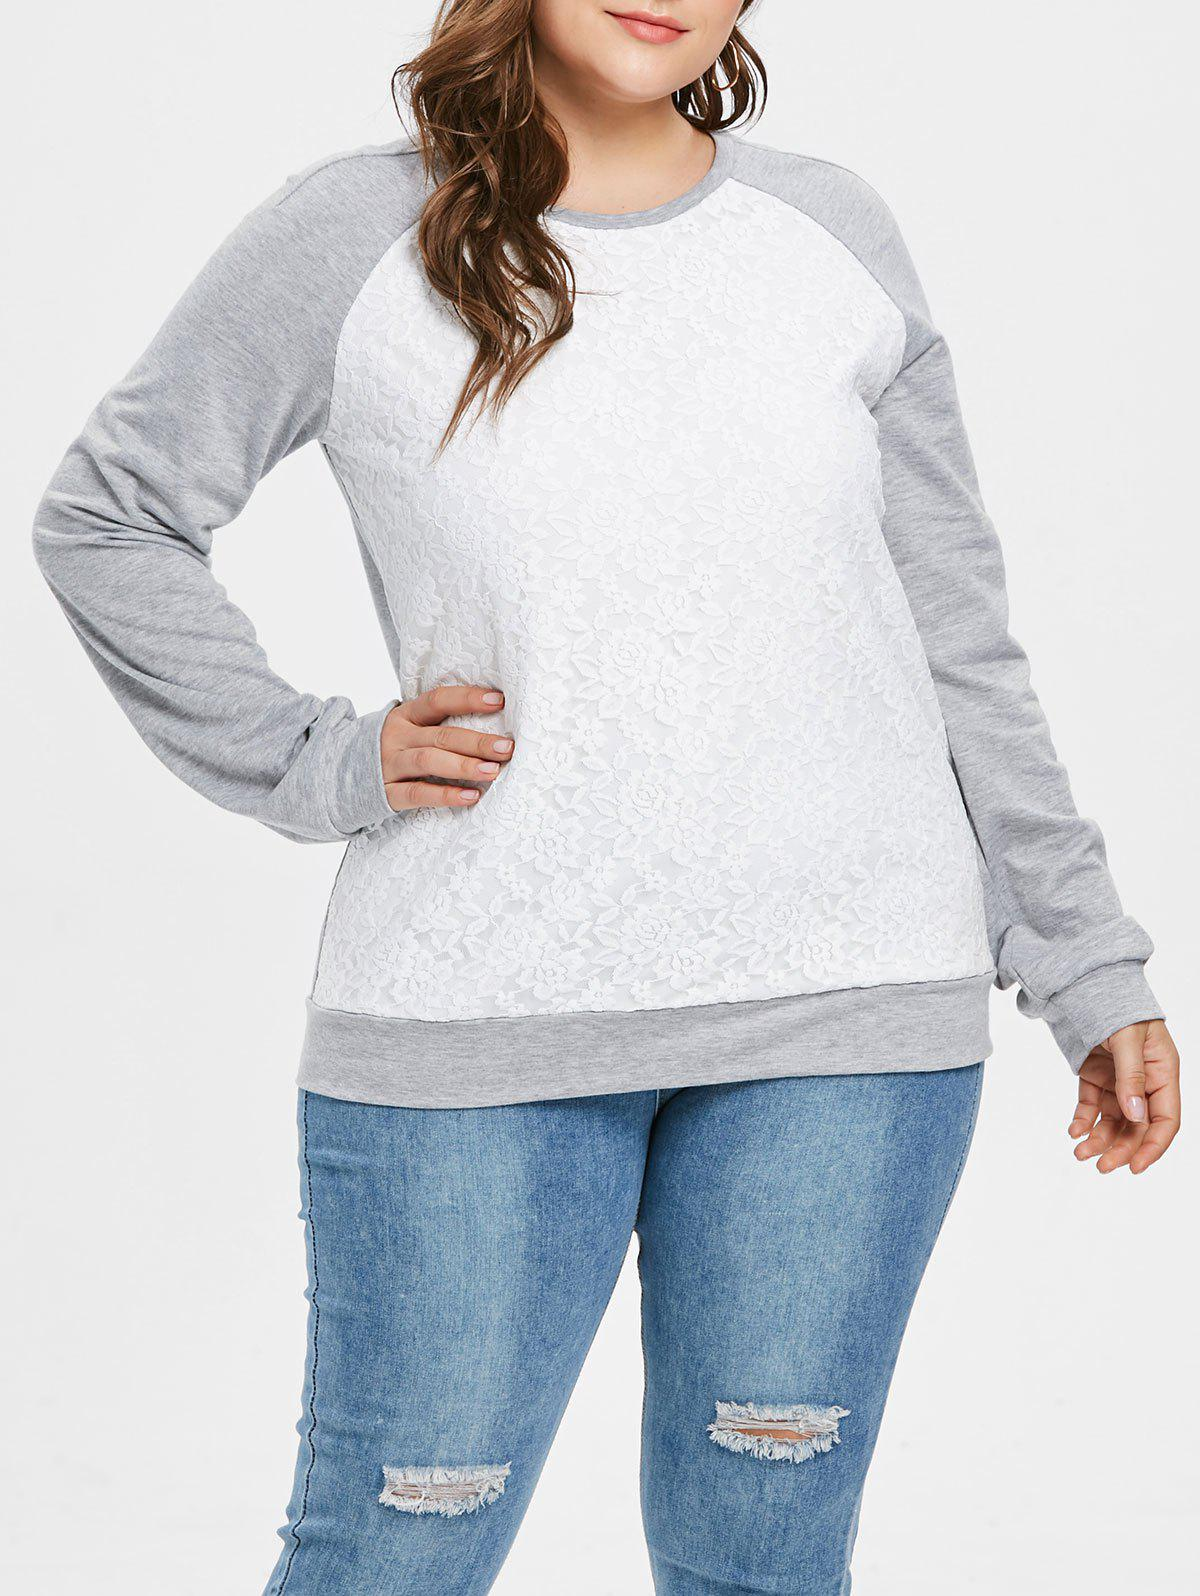 Chic Plus Size Two Tone Pullover Sweatshirt with Lace